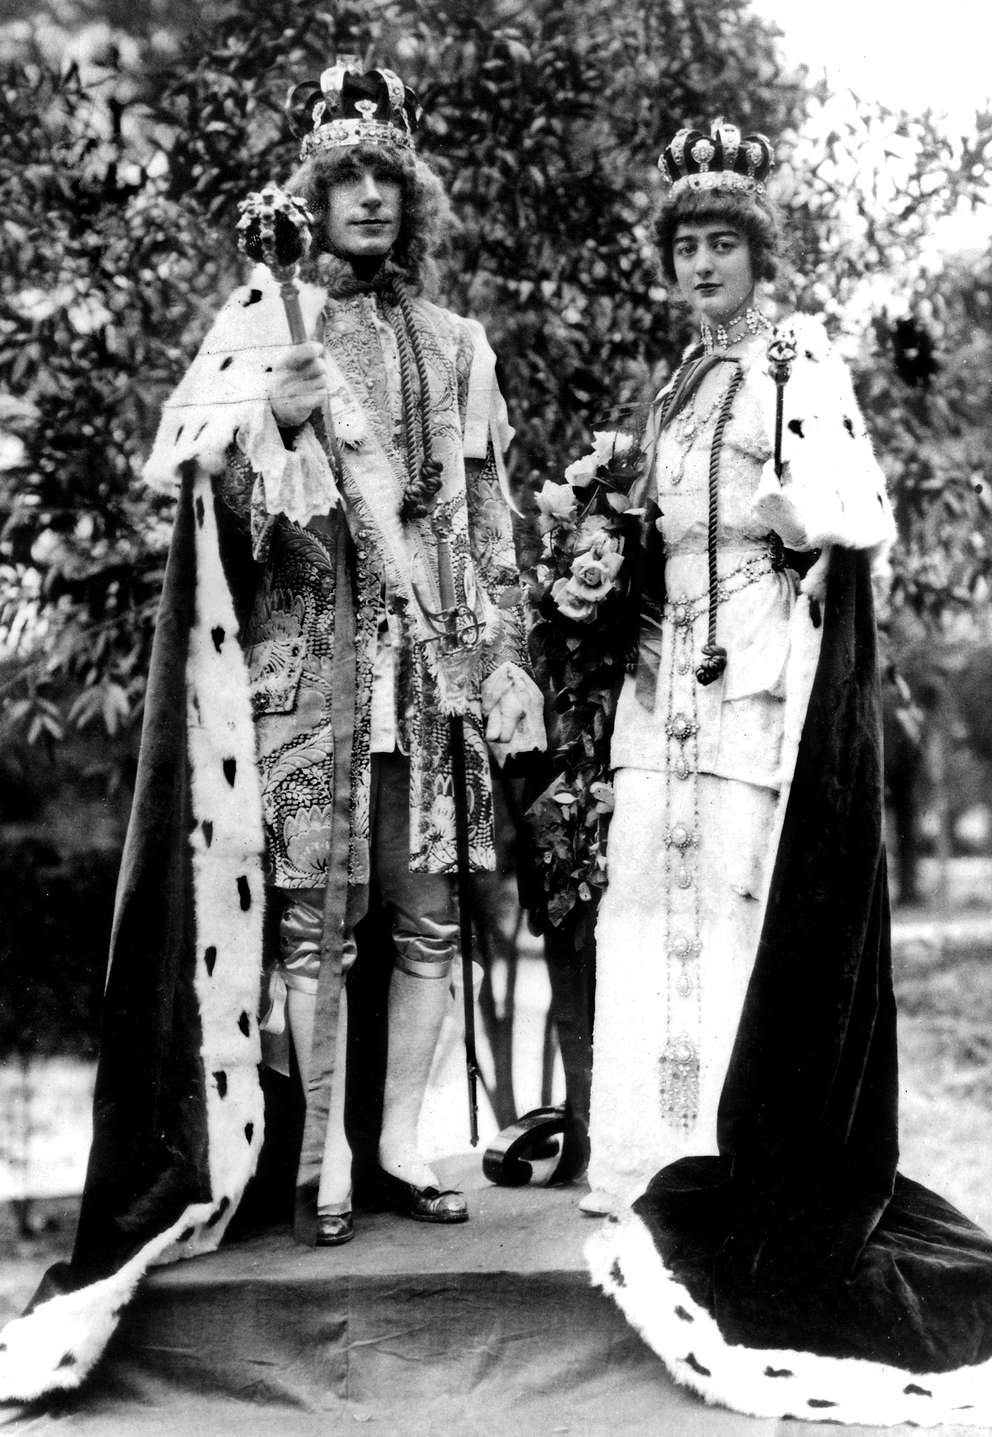 Ye Royal Court of Gasparilla VIII King William Reynolds Beckwith, 32, and Queen Mary Cotter Lucas, 21, in February 1914. [Courtesy, Tampa-Hillsborough County Public Library System]